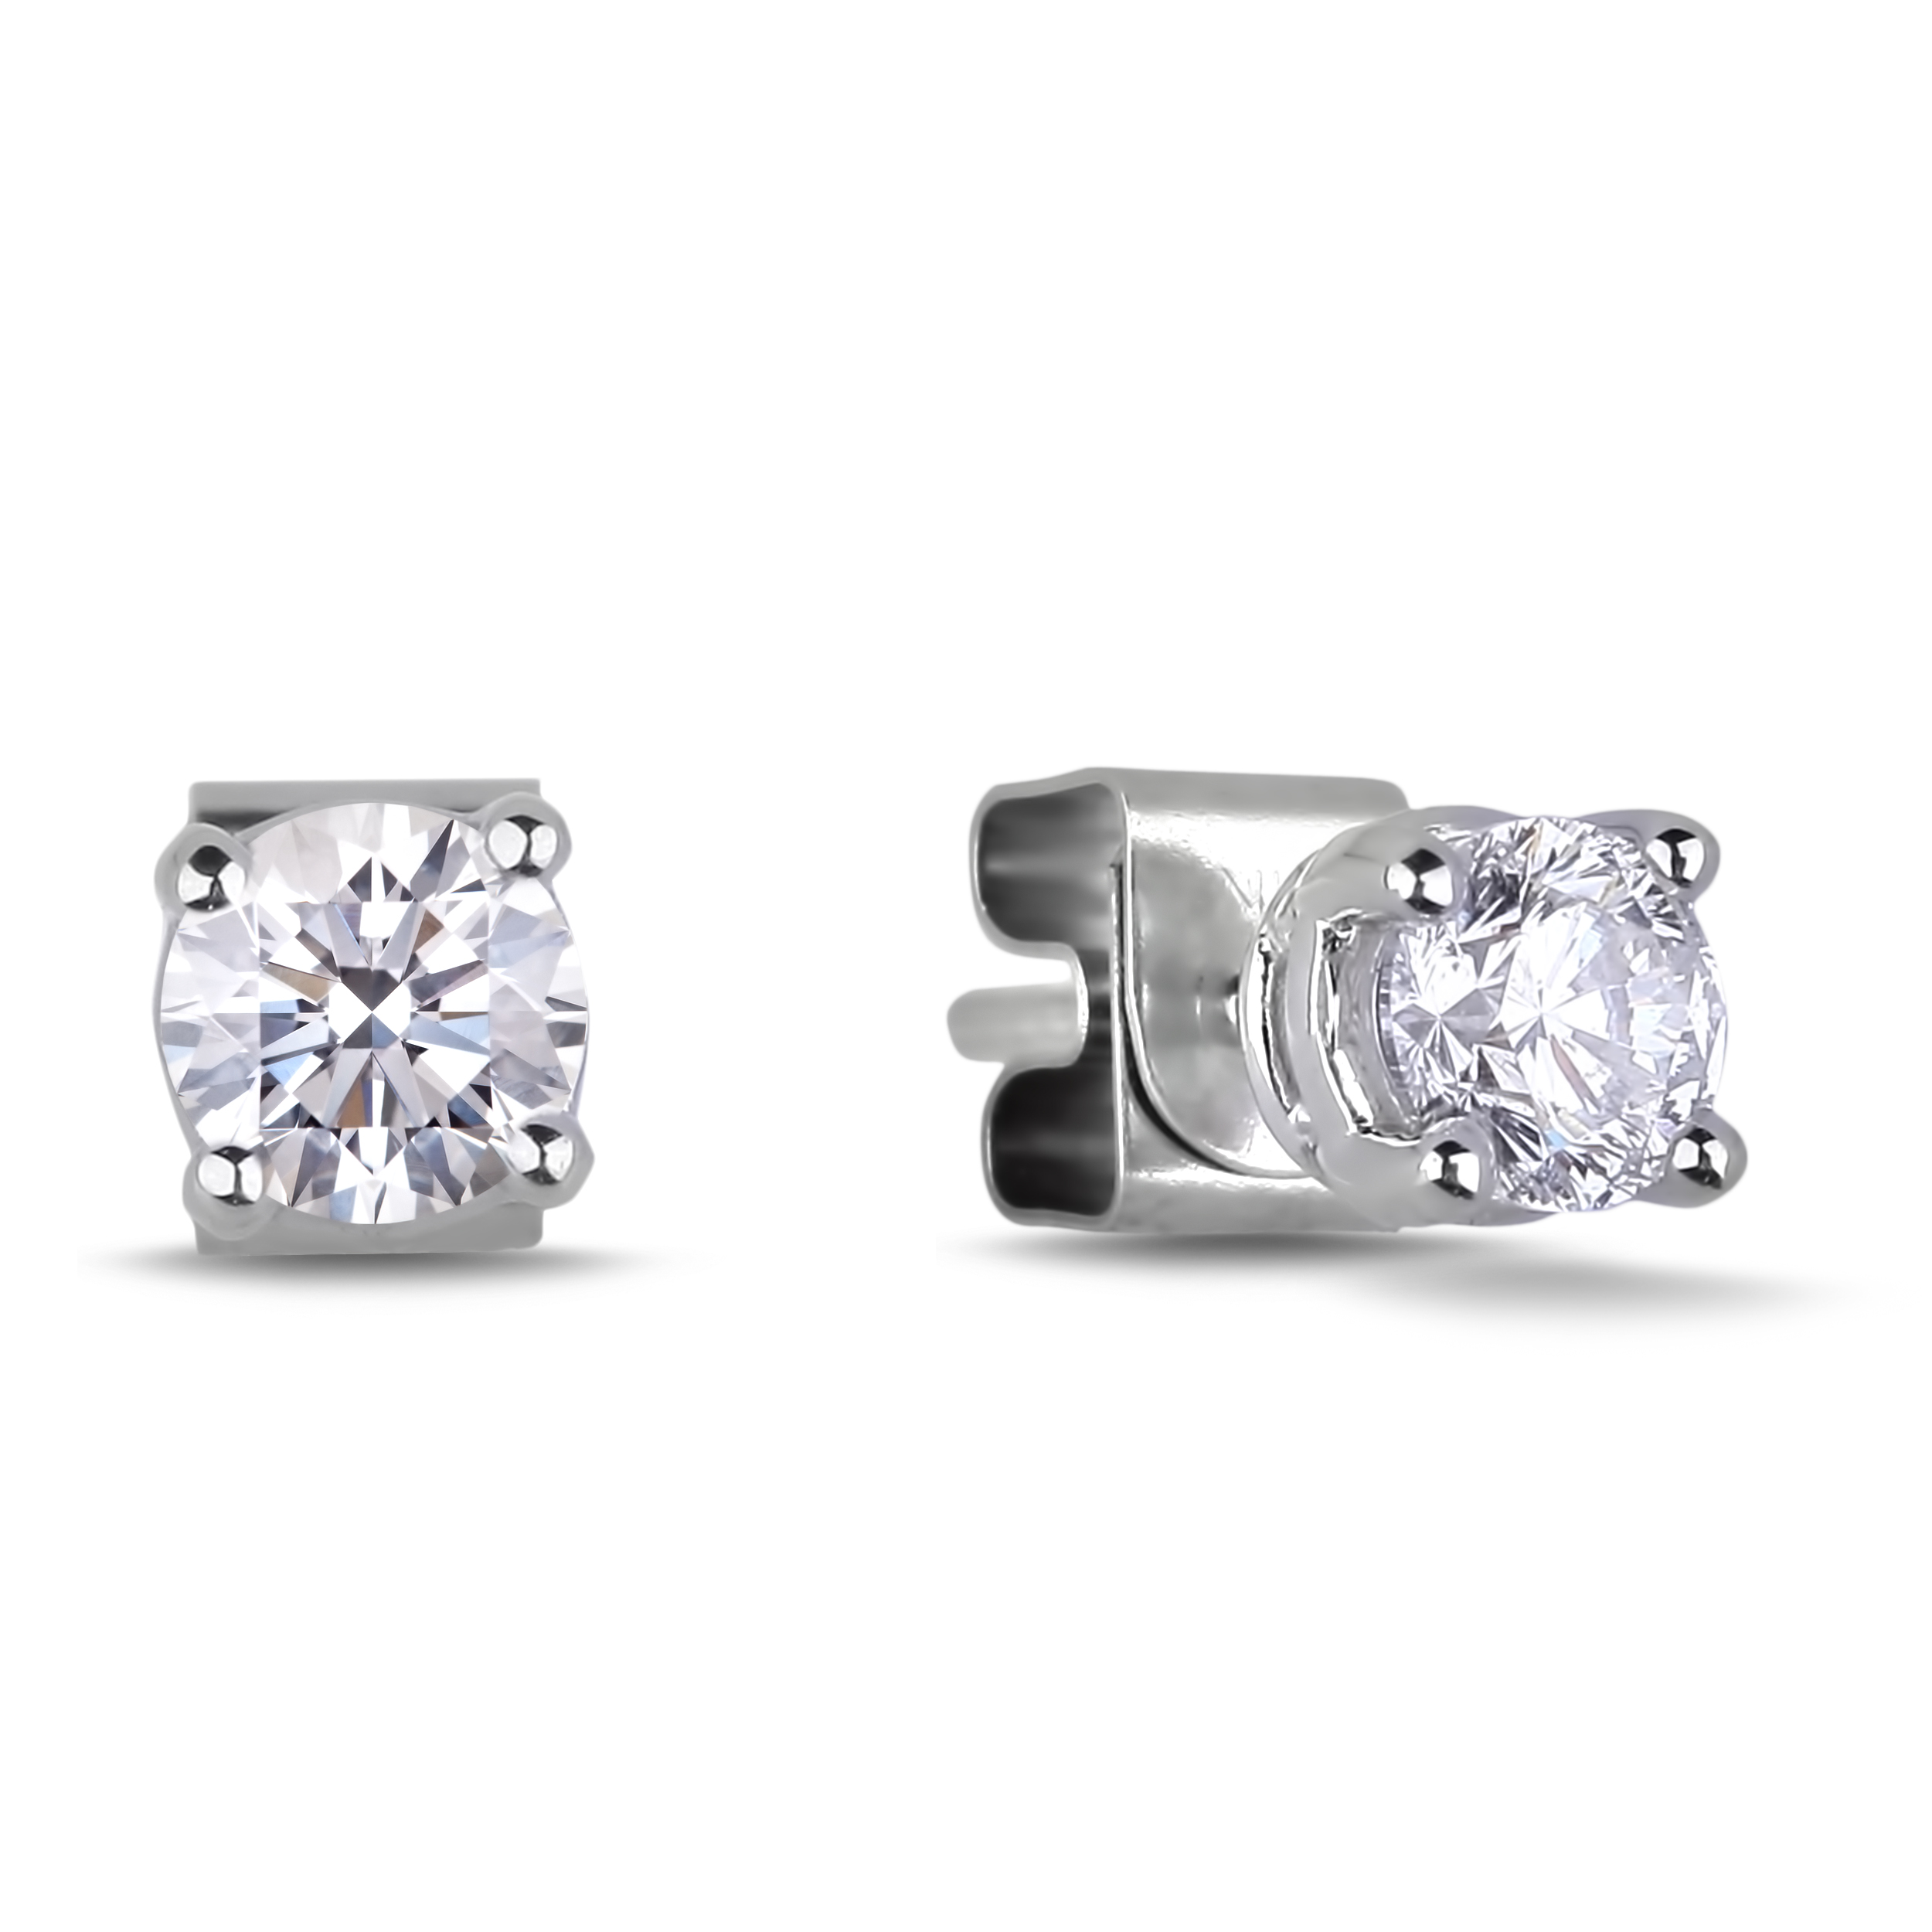 Diamond Stud Earrings SGE313 (Earrings)